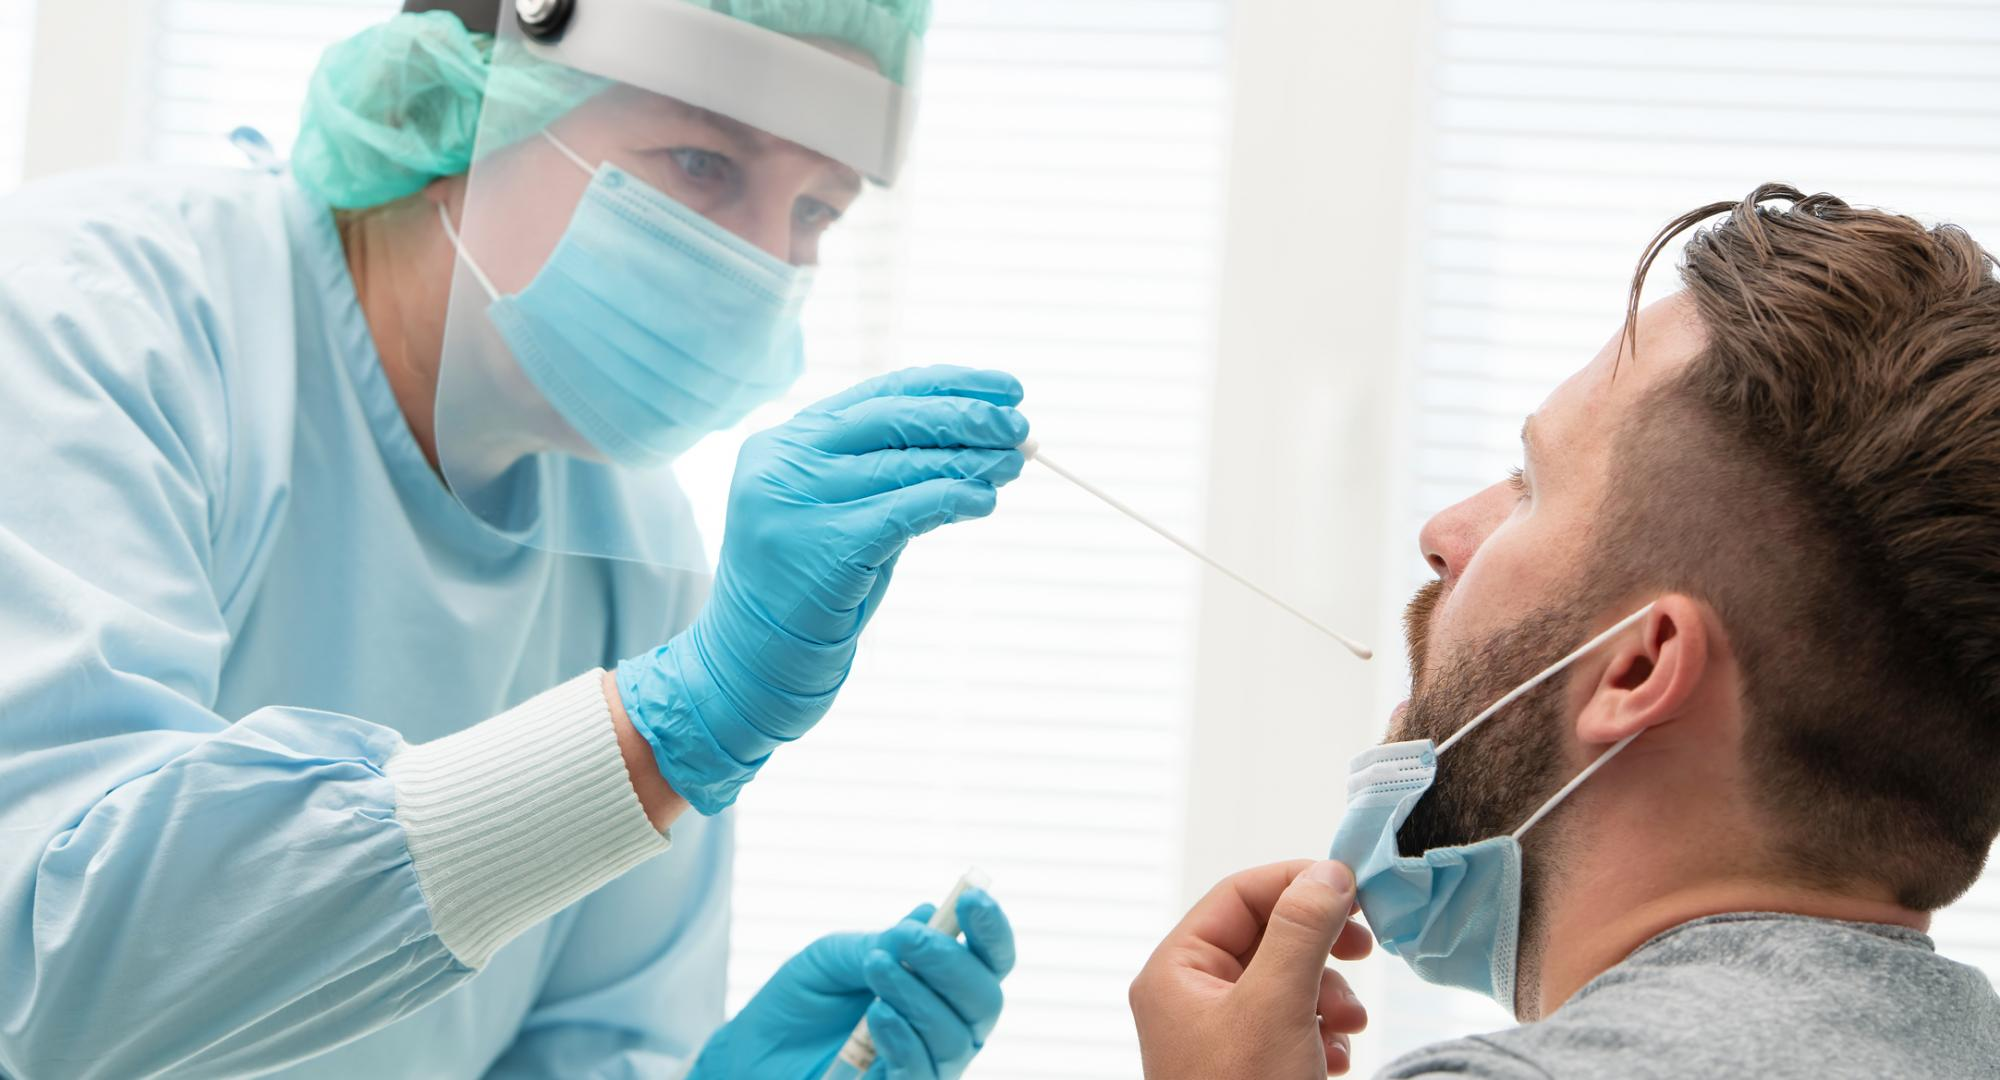 Health professional carrying out a nasal swab on a patient